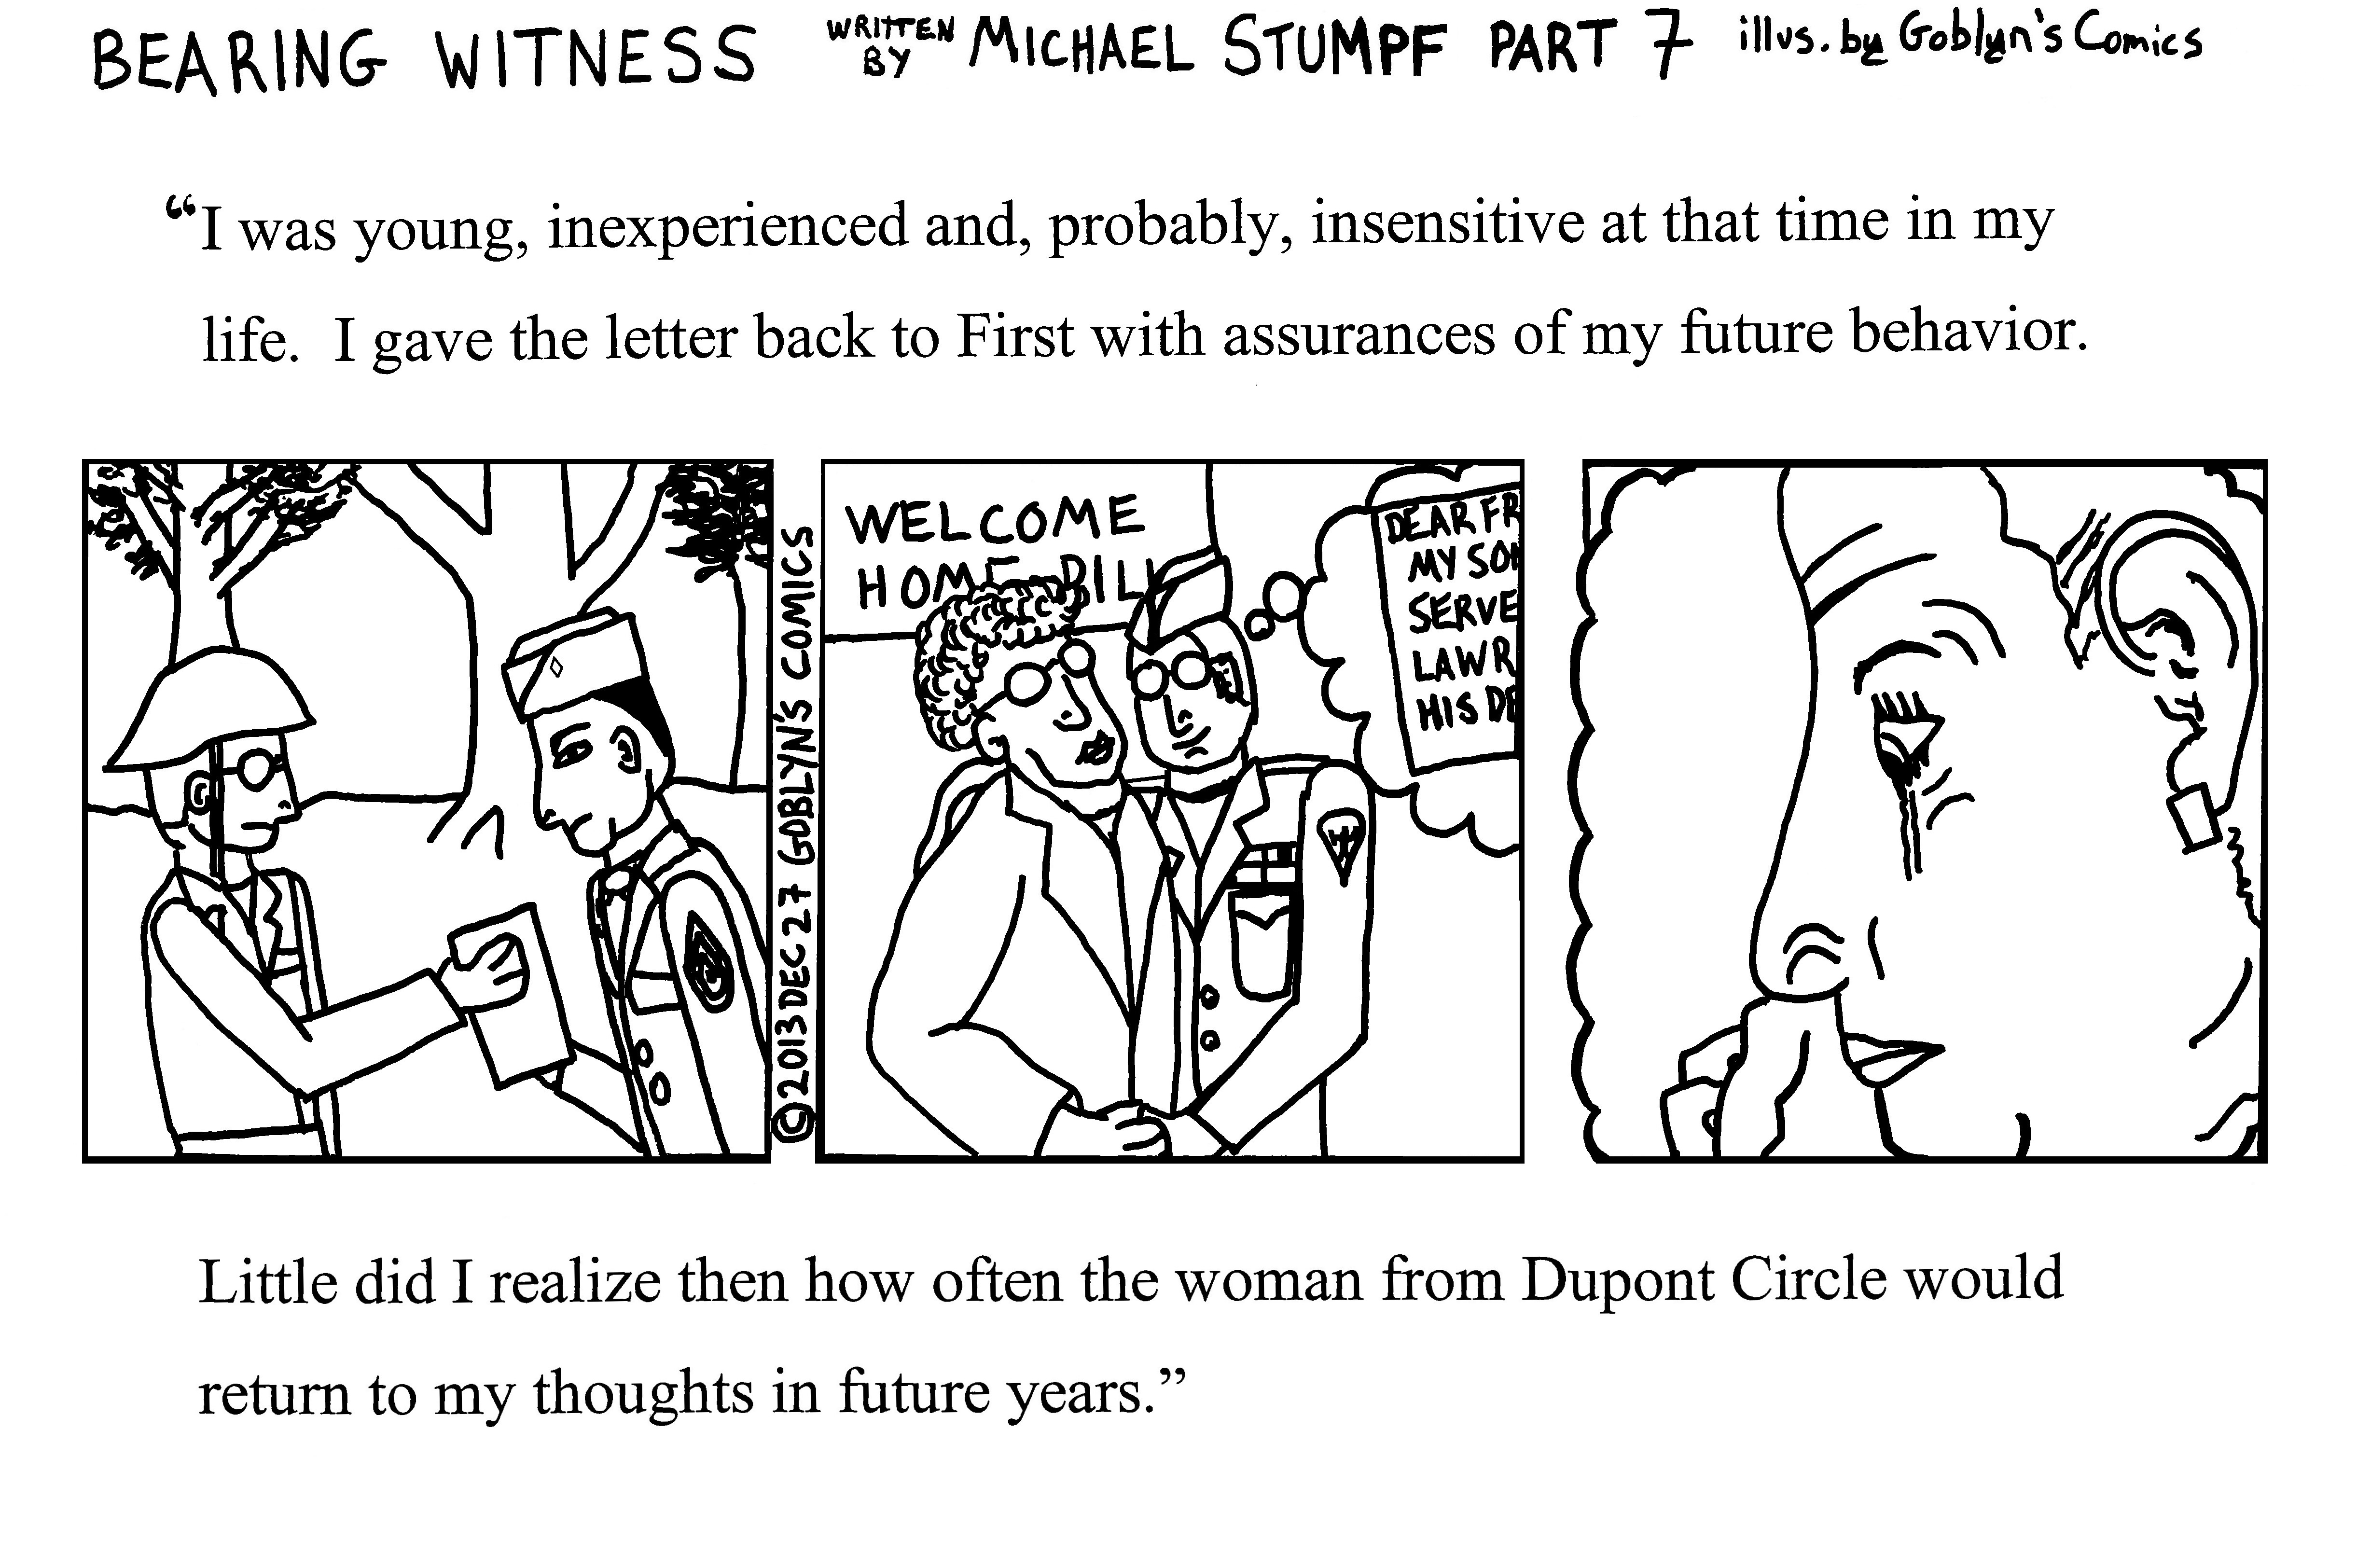 Bearing Witness by Michael Stumpf, Part 7, illustrated by Goblyn's Comics